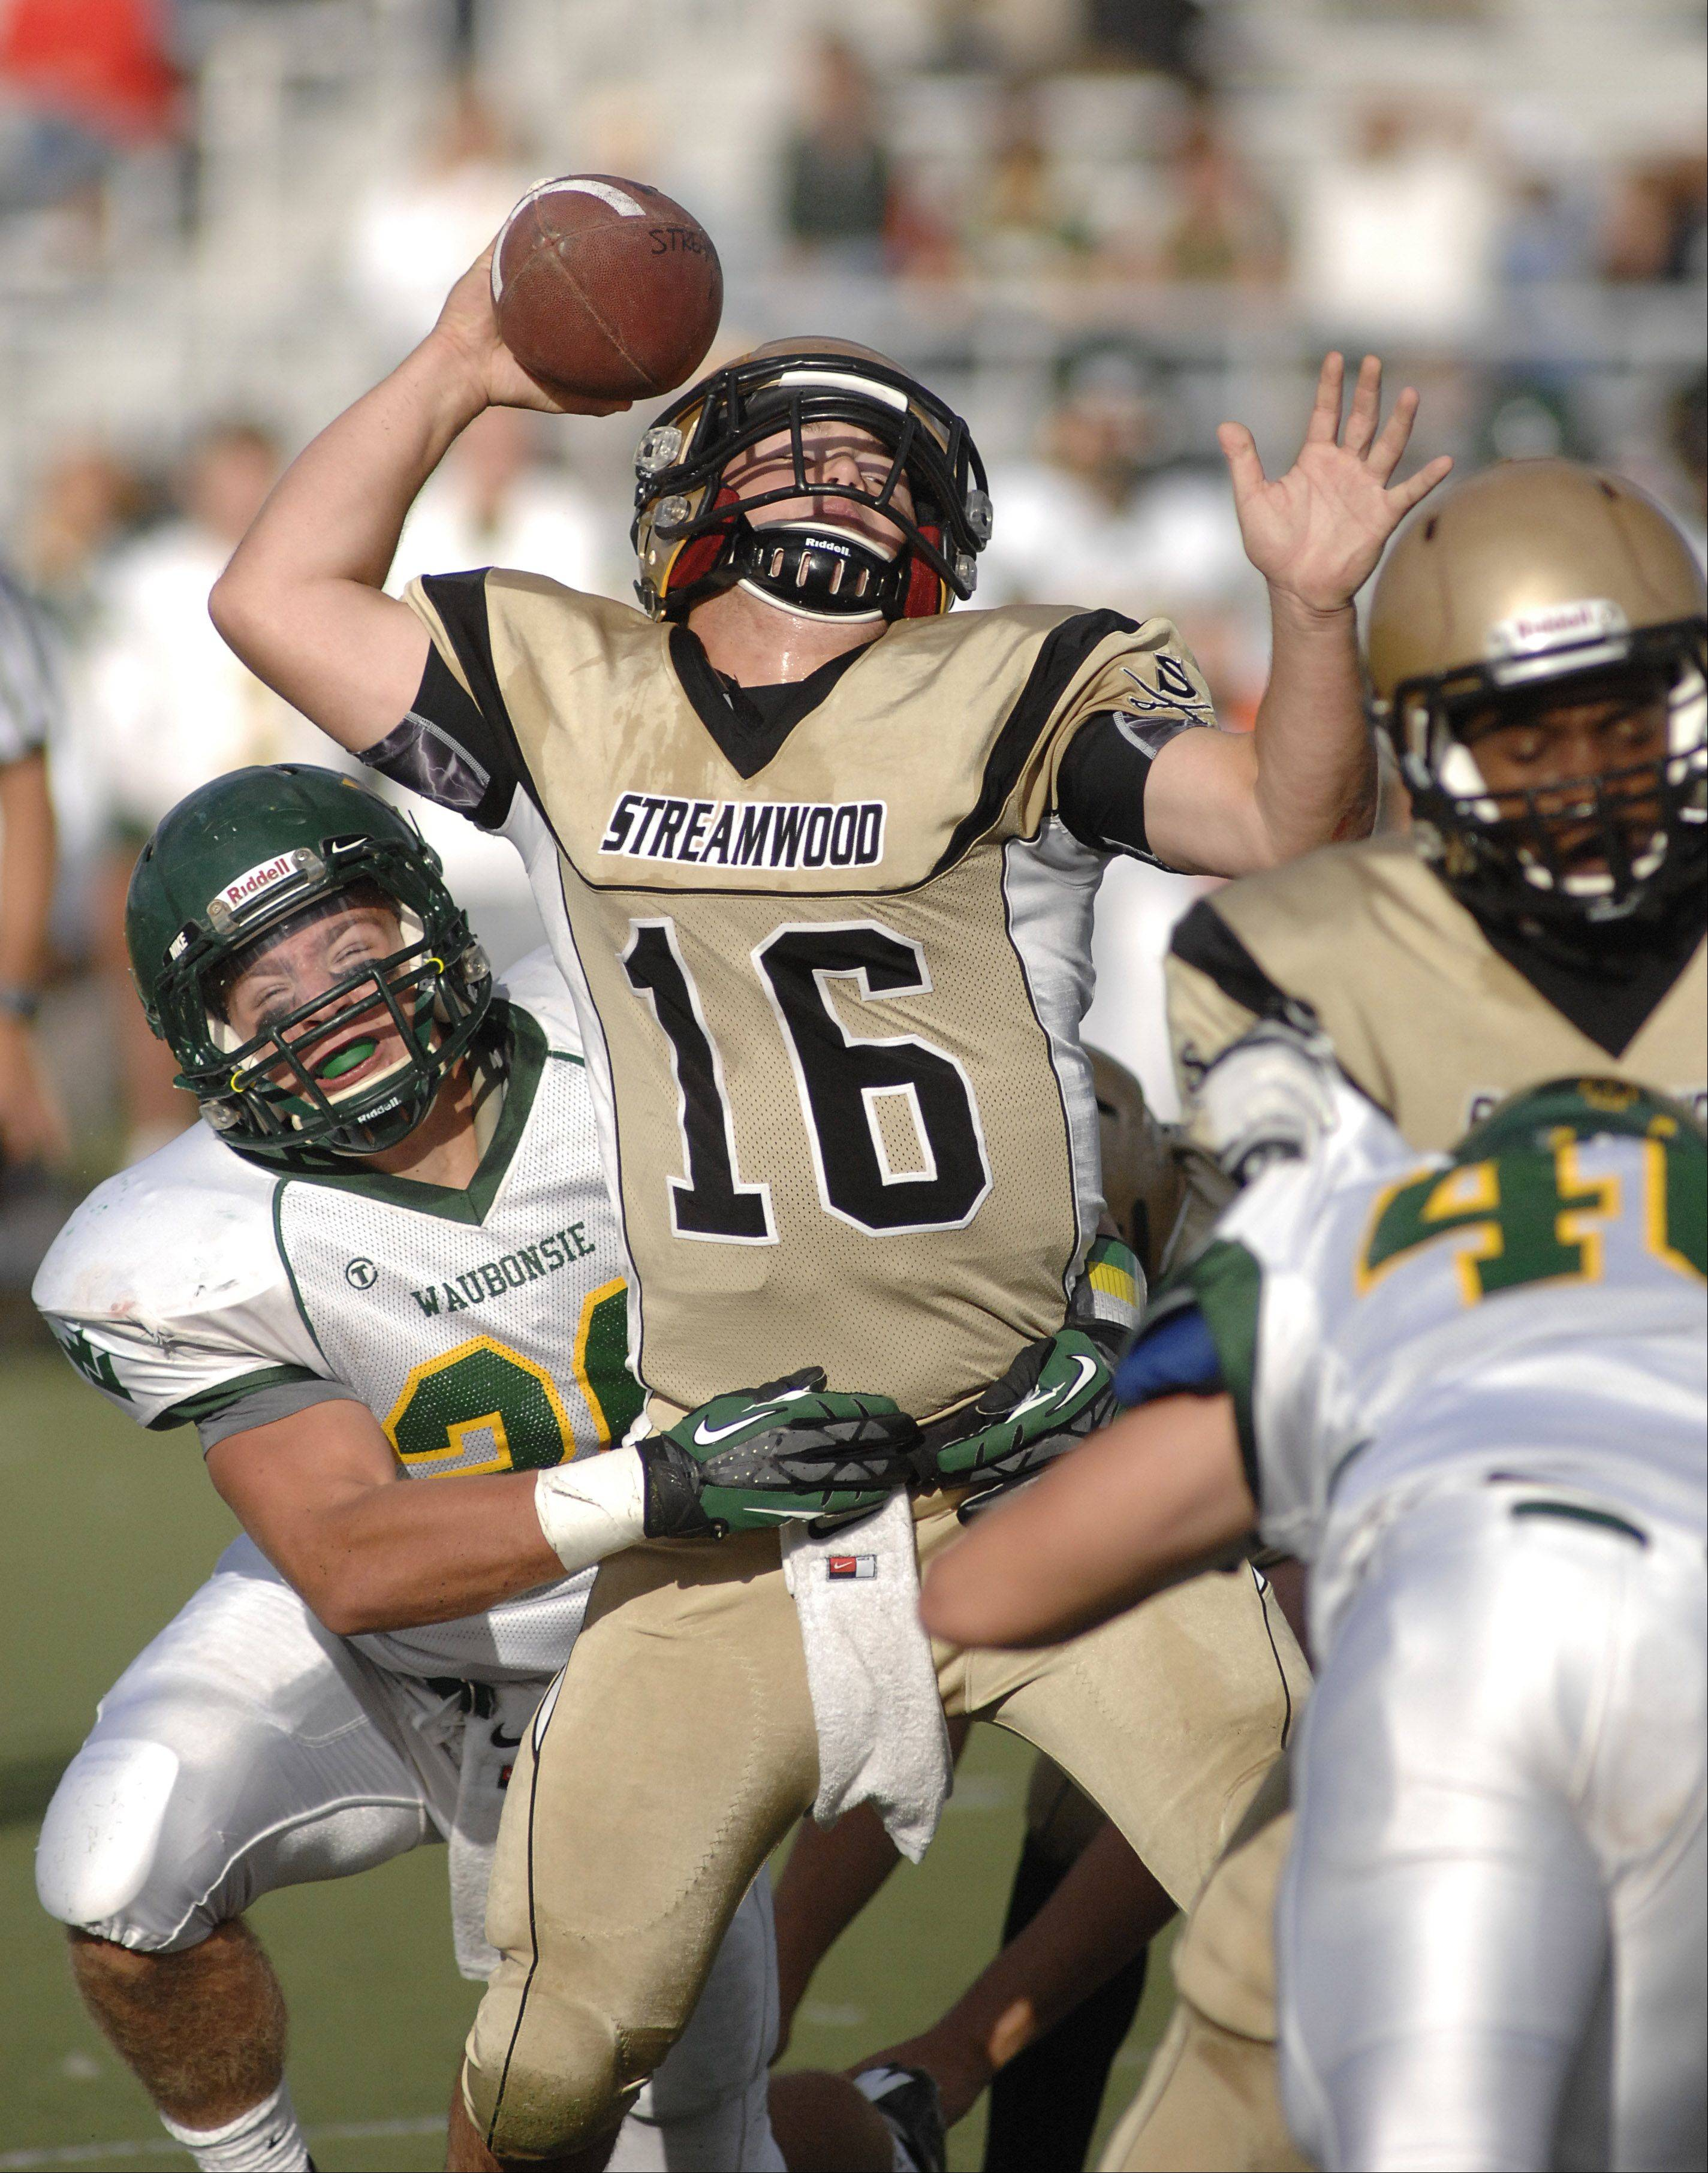 Waubonsie Valley's Hugh Griffin sacks Streamwood quarterback Mason Polich during Saturday's game.